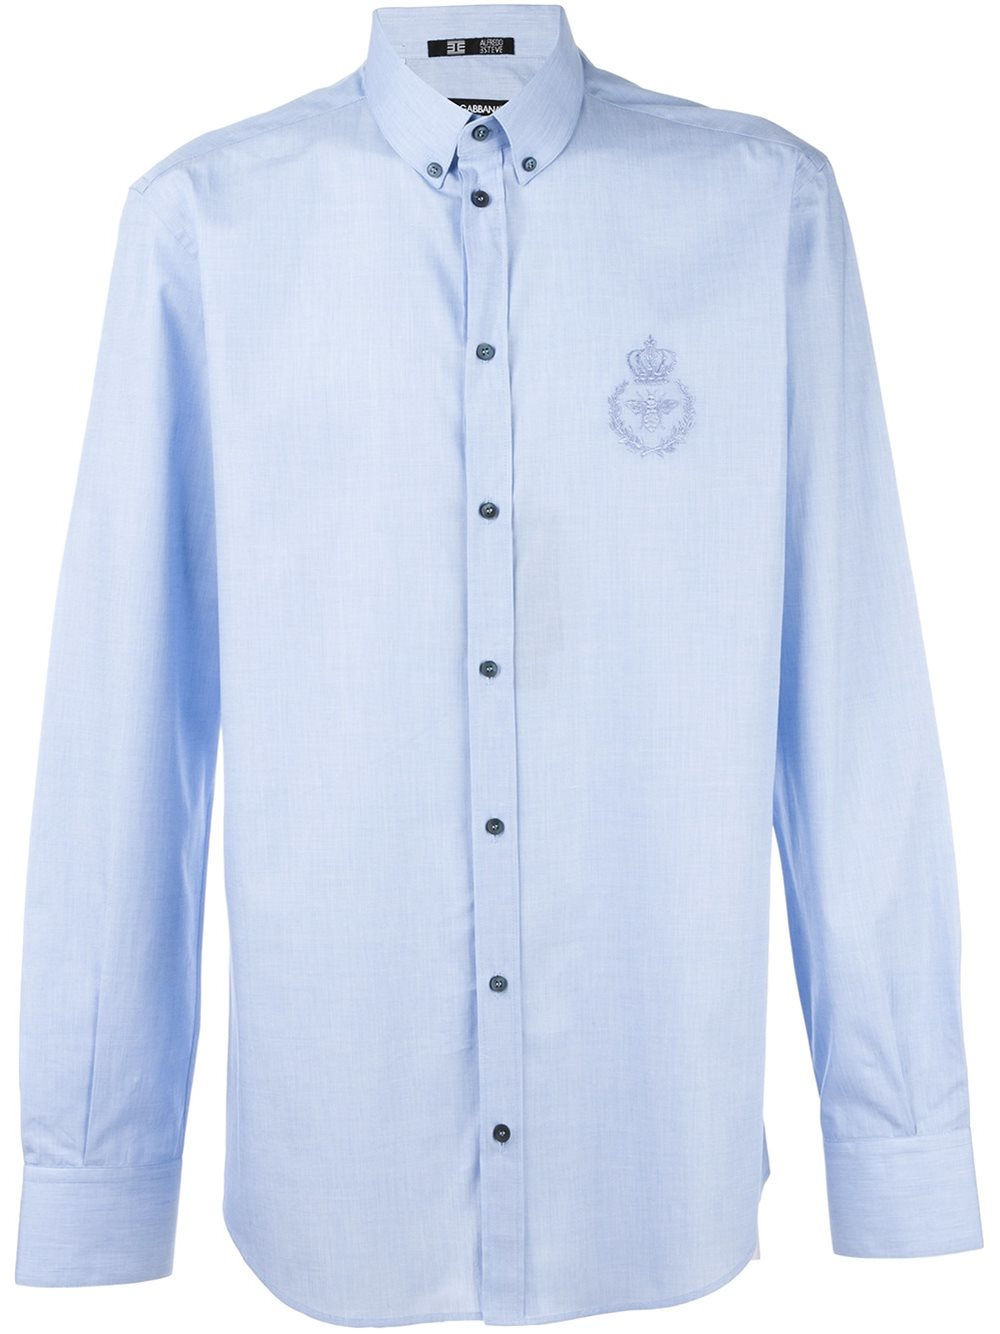 Dolce gabbana crown bee embroidered shirt in blue for